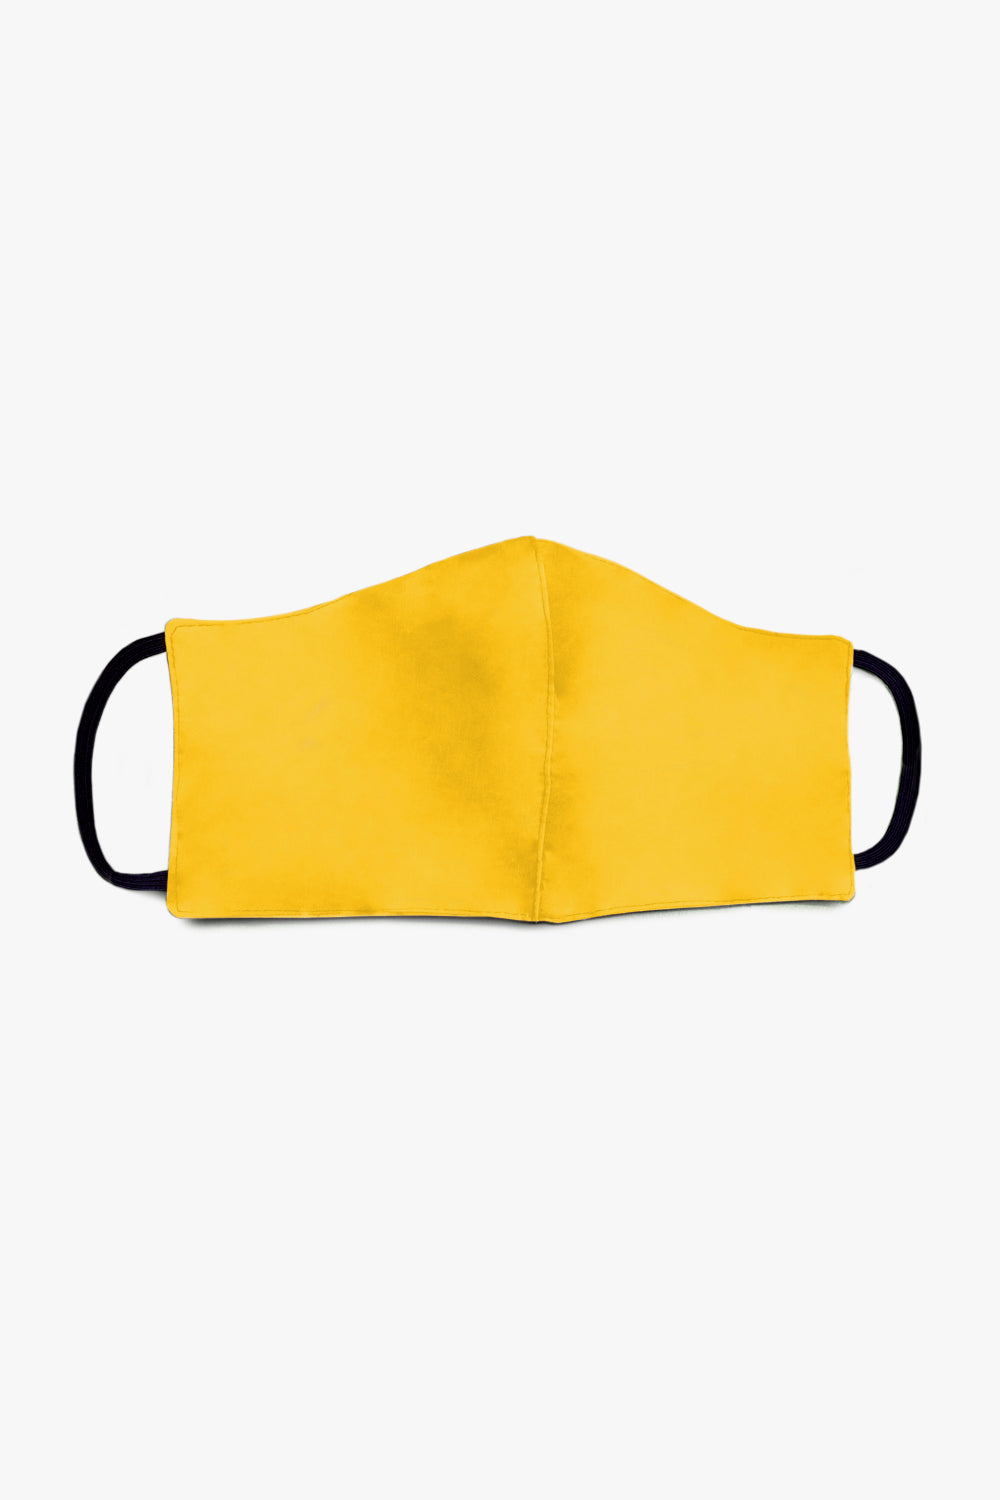 face mask / yellow